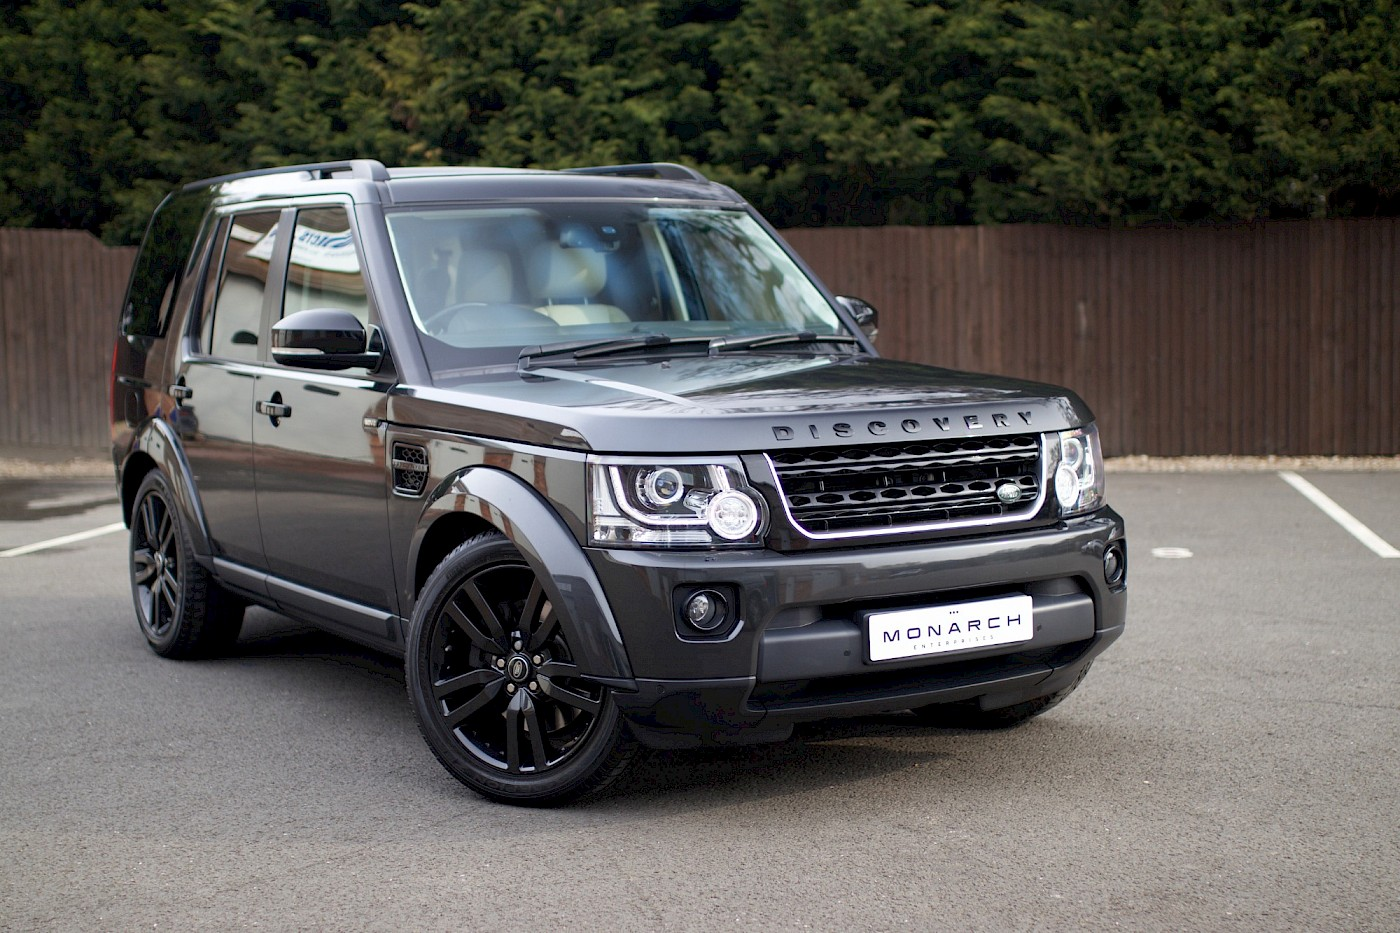 2015/15 Land Rover Discovery HSE Luxury SDV6 3